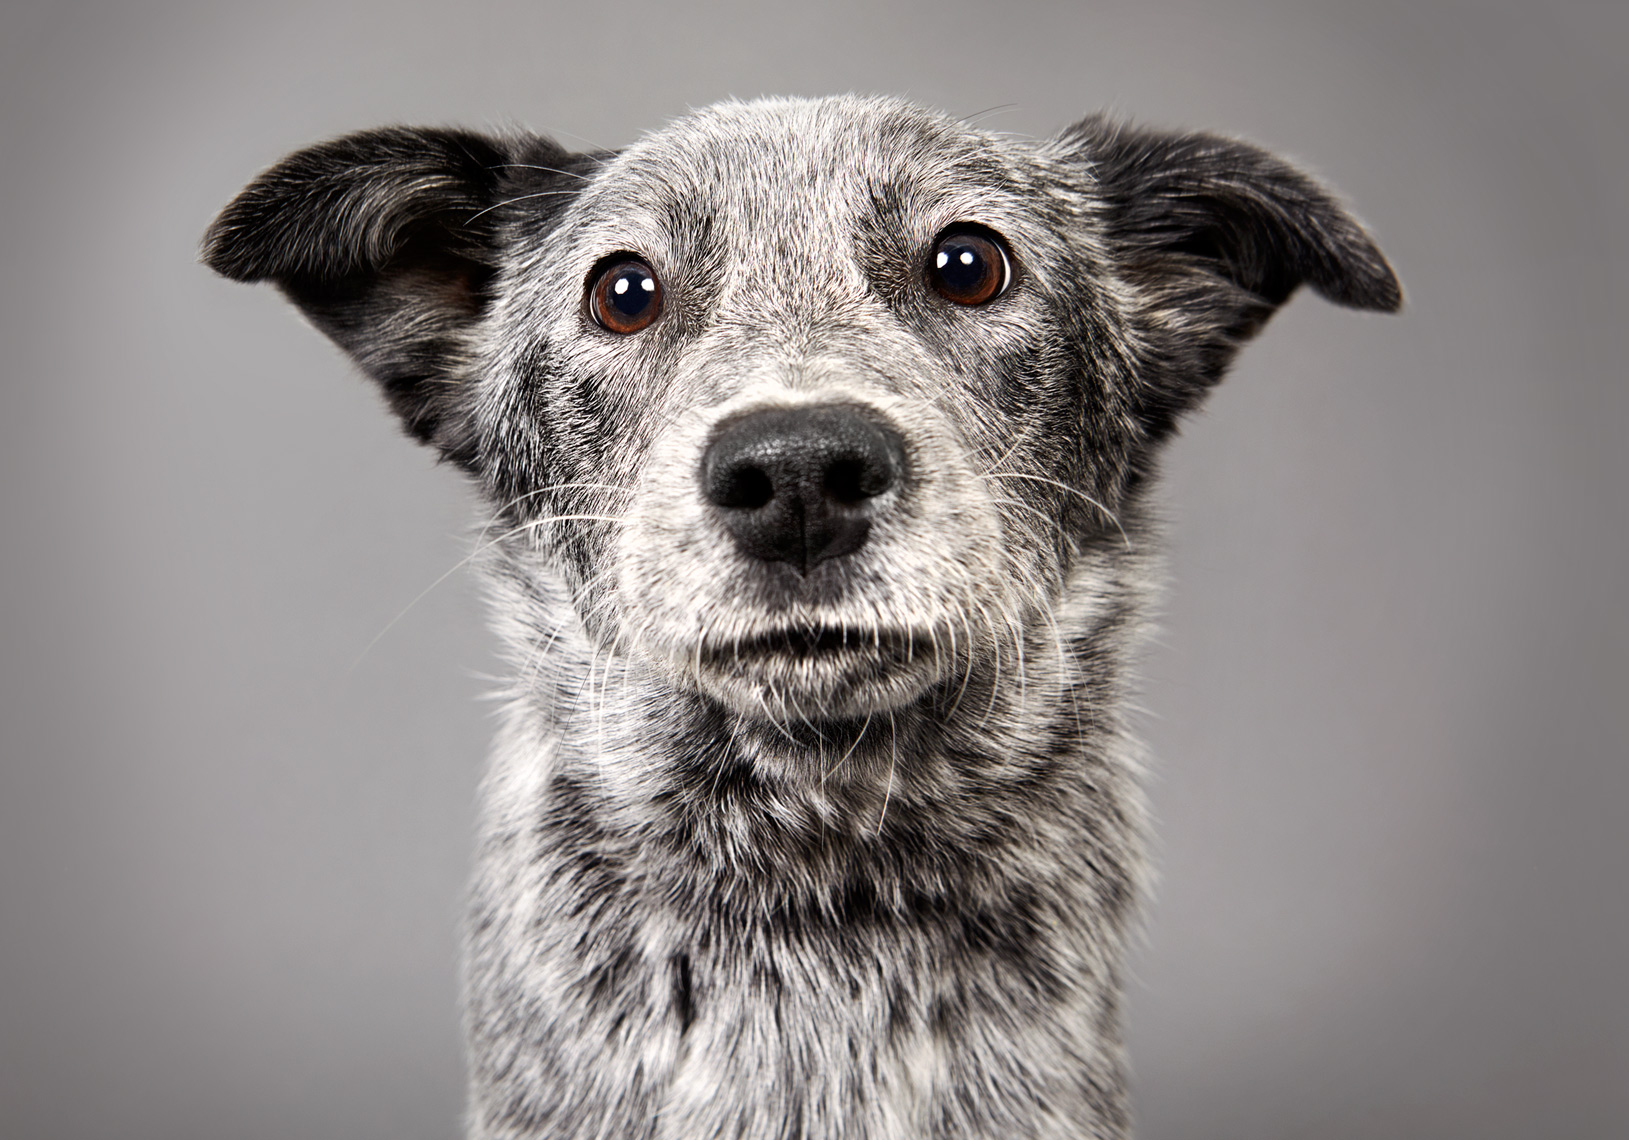 Cattle dog puppy portrait with cute face